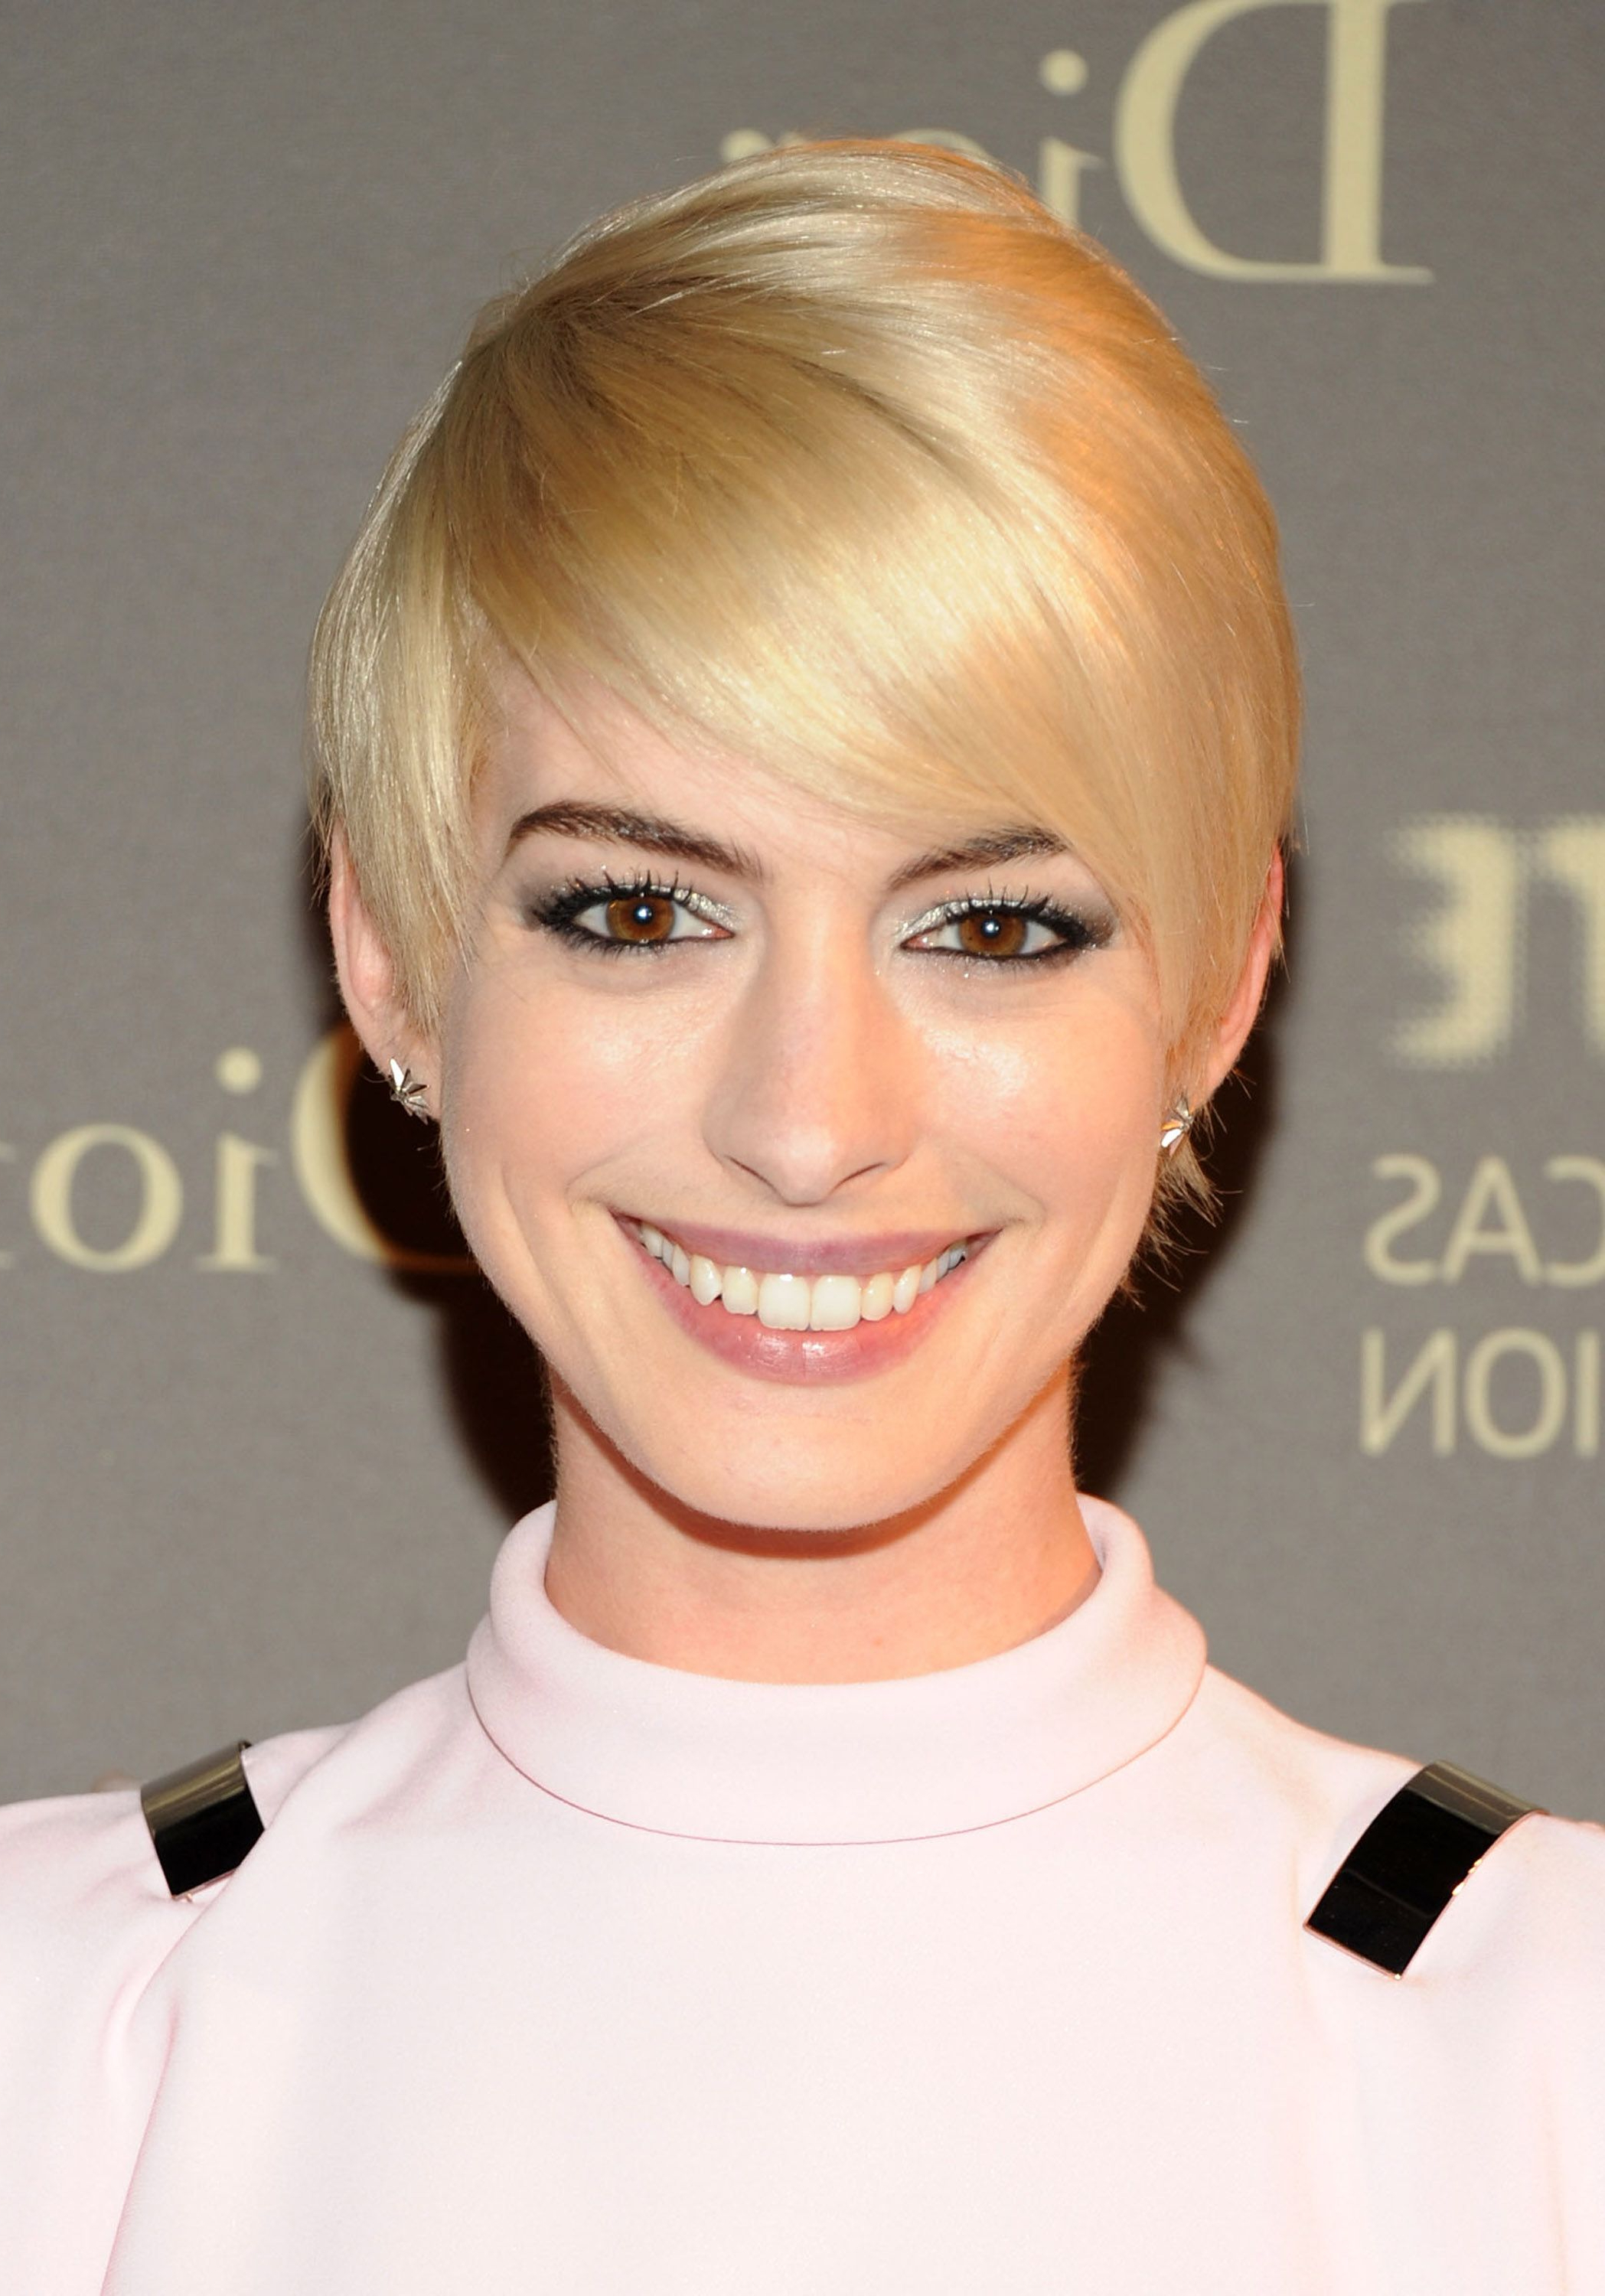 40 Best Short Pixie Cut Hairstyles 2018 – Cute Pixie Haircuts For Women In Rebonded Short Hairstyles (View 18 of 25)